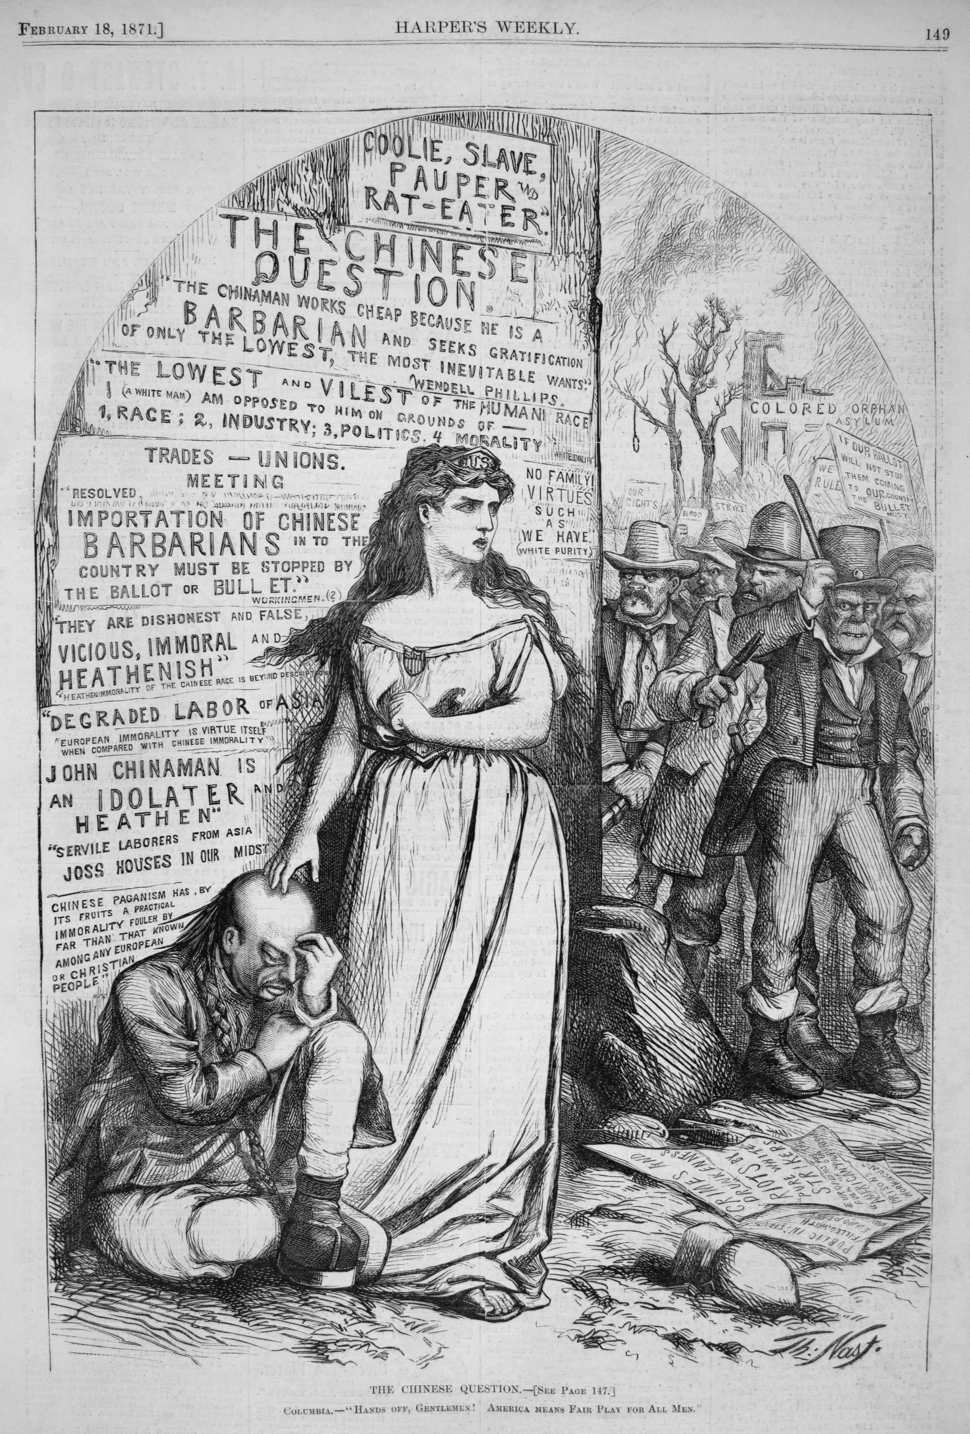 The Chinese Question (February 1871), by Thomas Nast